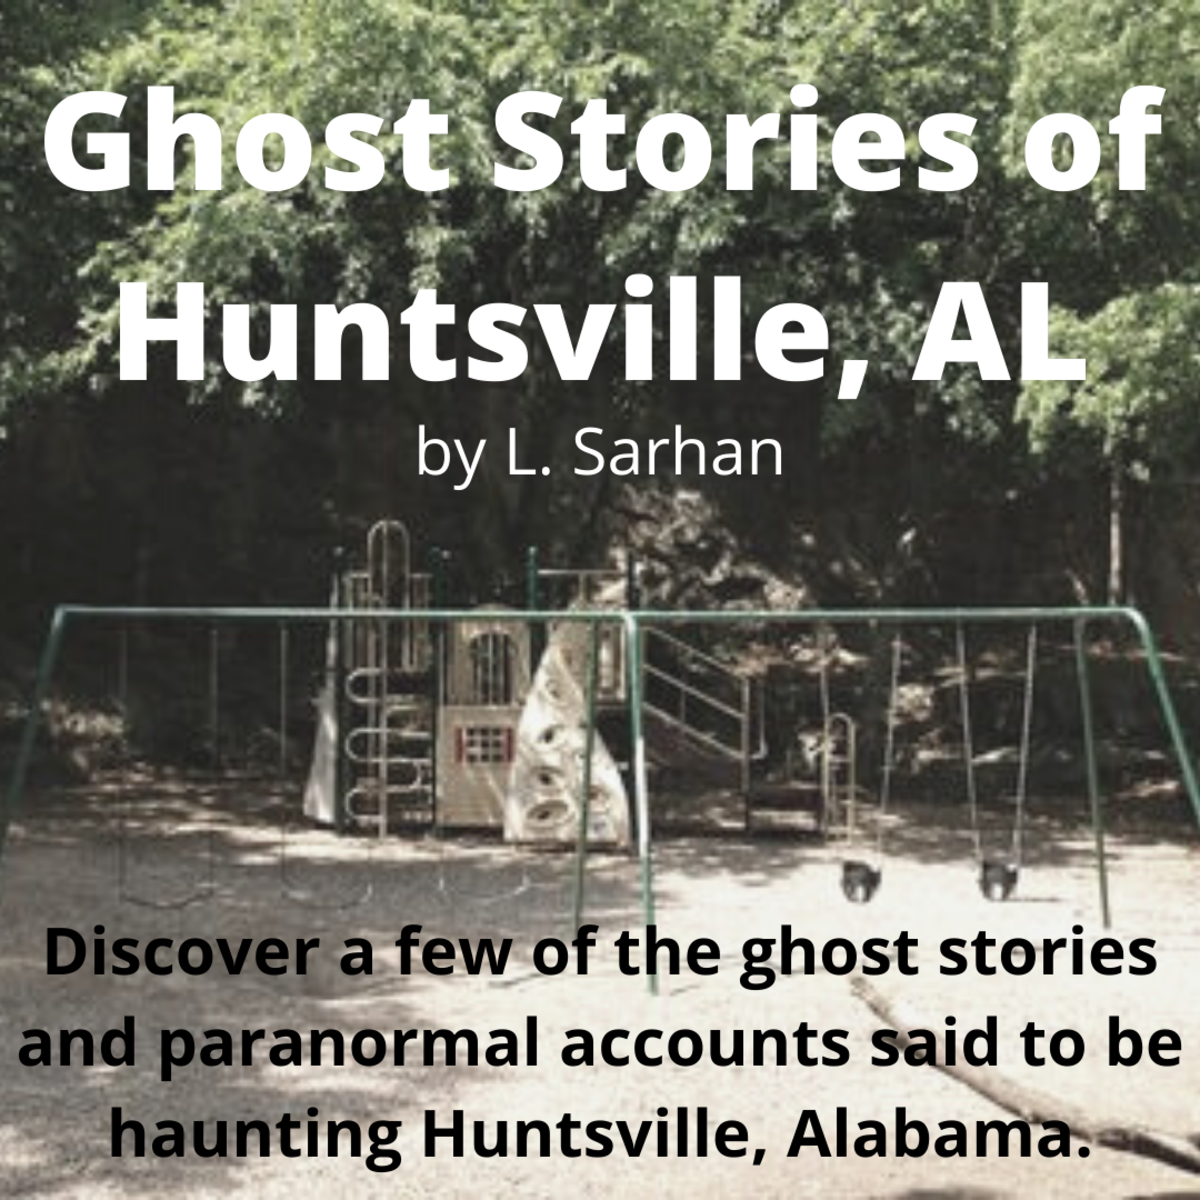 Discover a few of the ghost stories and paranormal accounts said to be haunting Huntsville, Alabama.